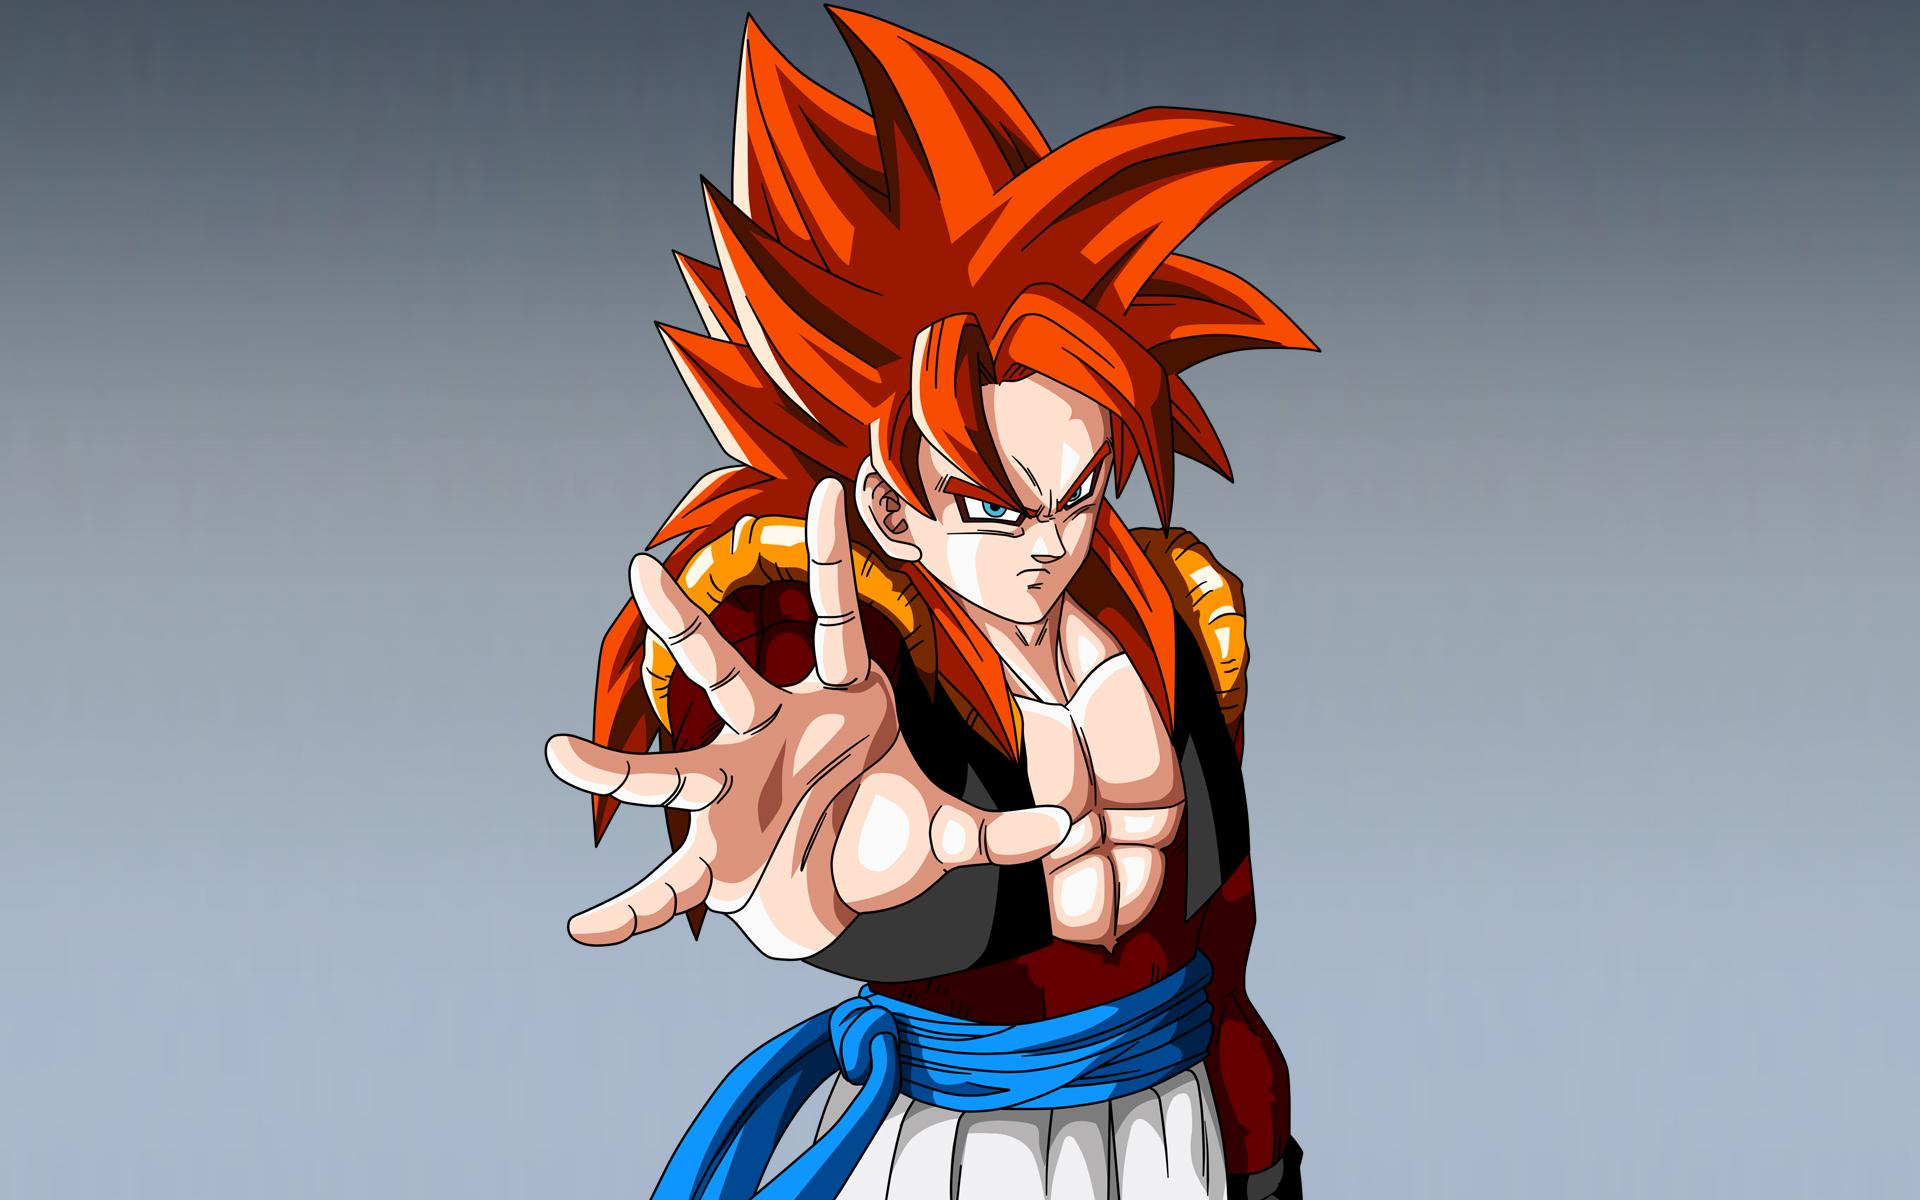 fantastic gogeta wallpaper 41311